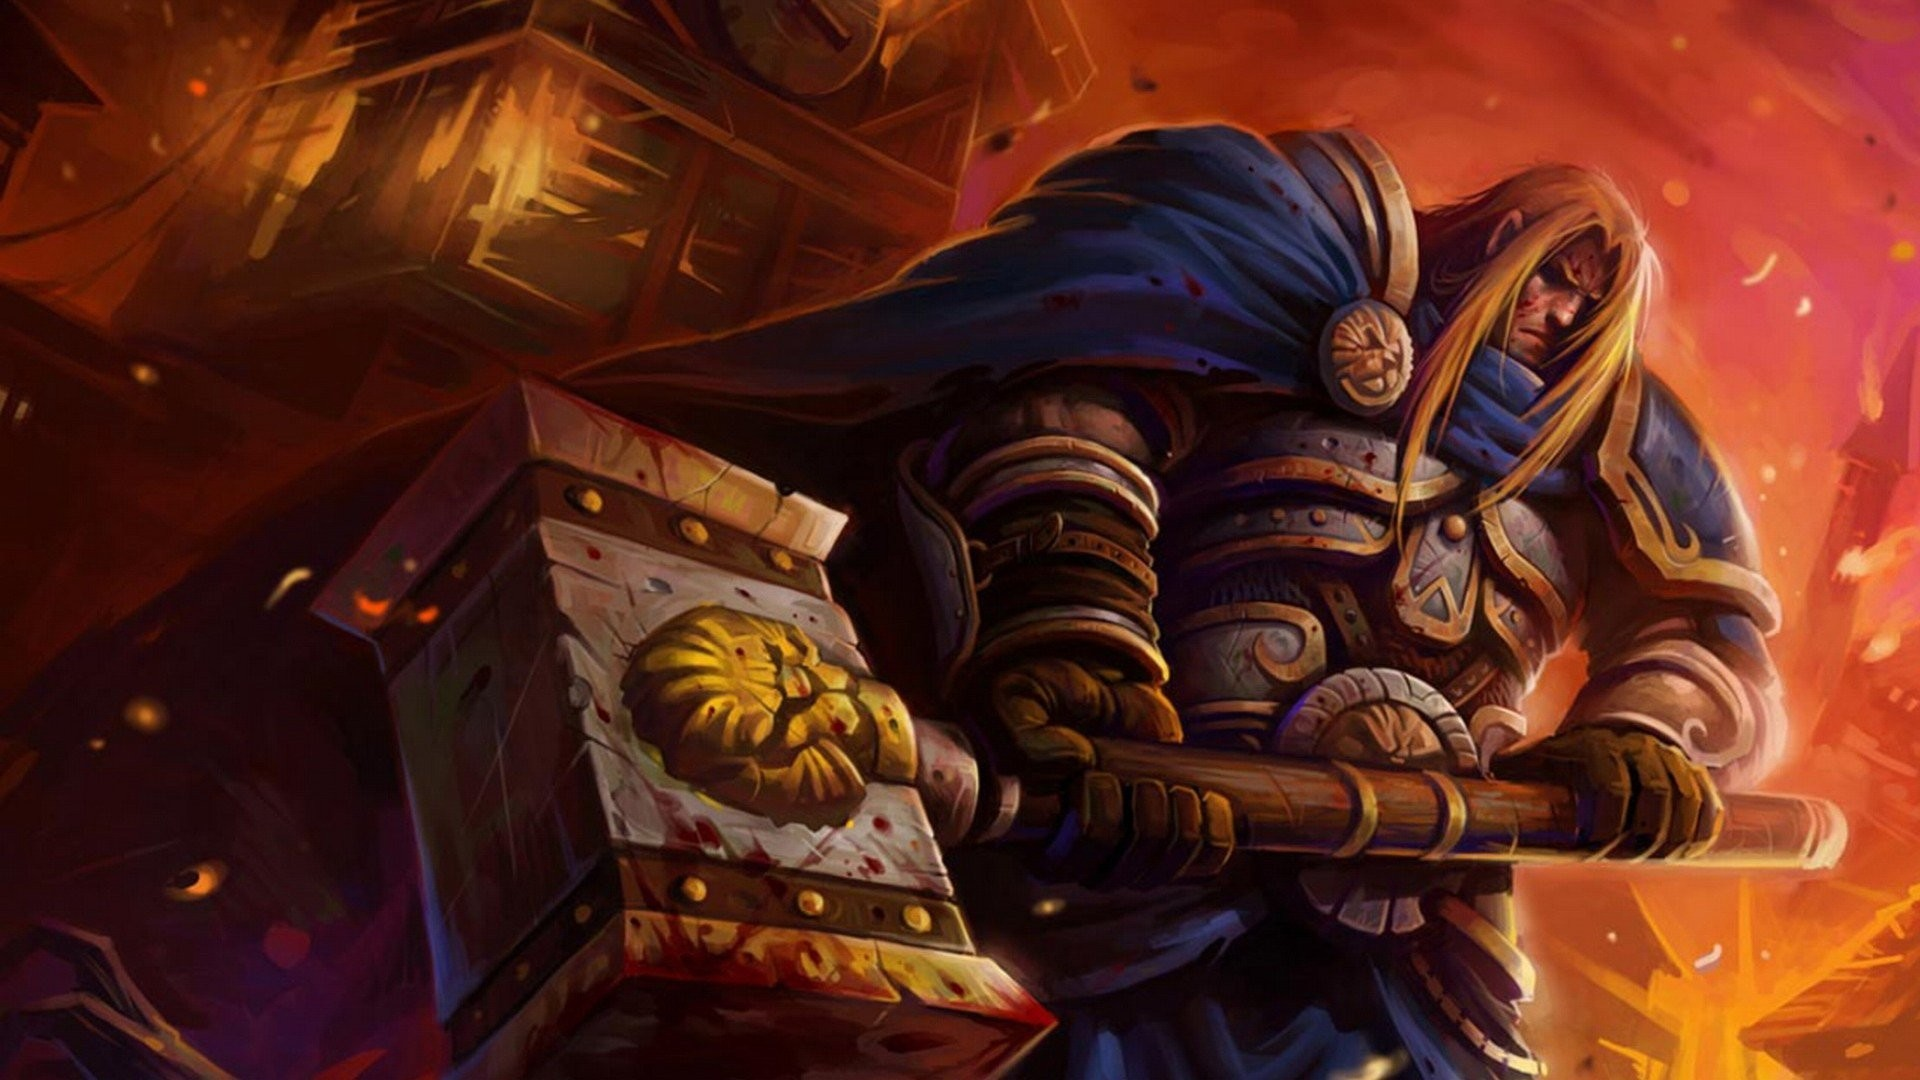 World Of Warcraft (WoW) Wallpapers (50 Wallpapers) – Adorable Wallpapers